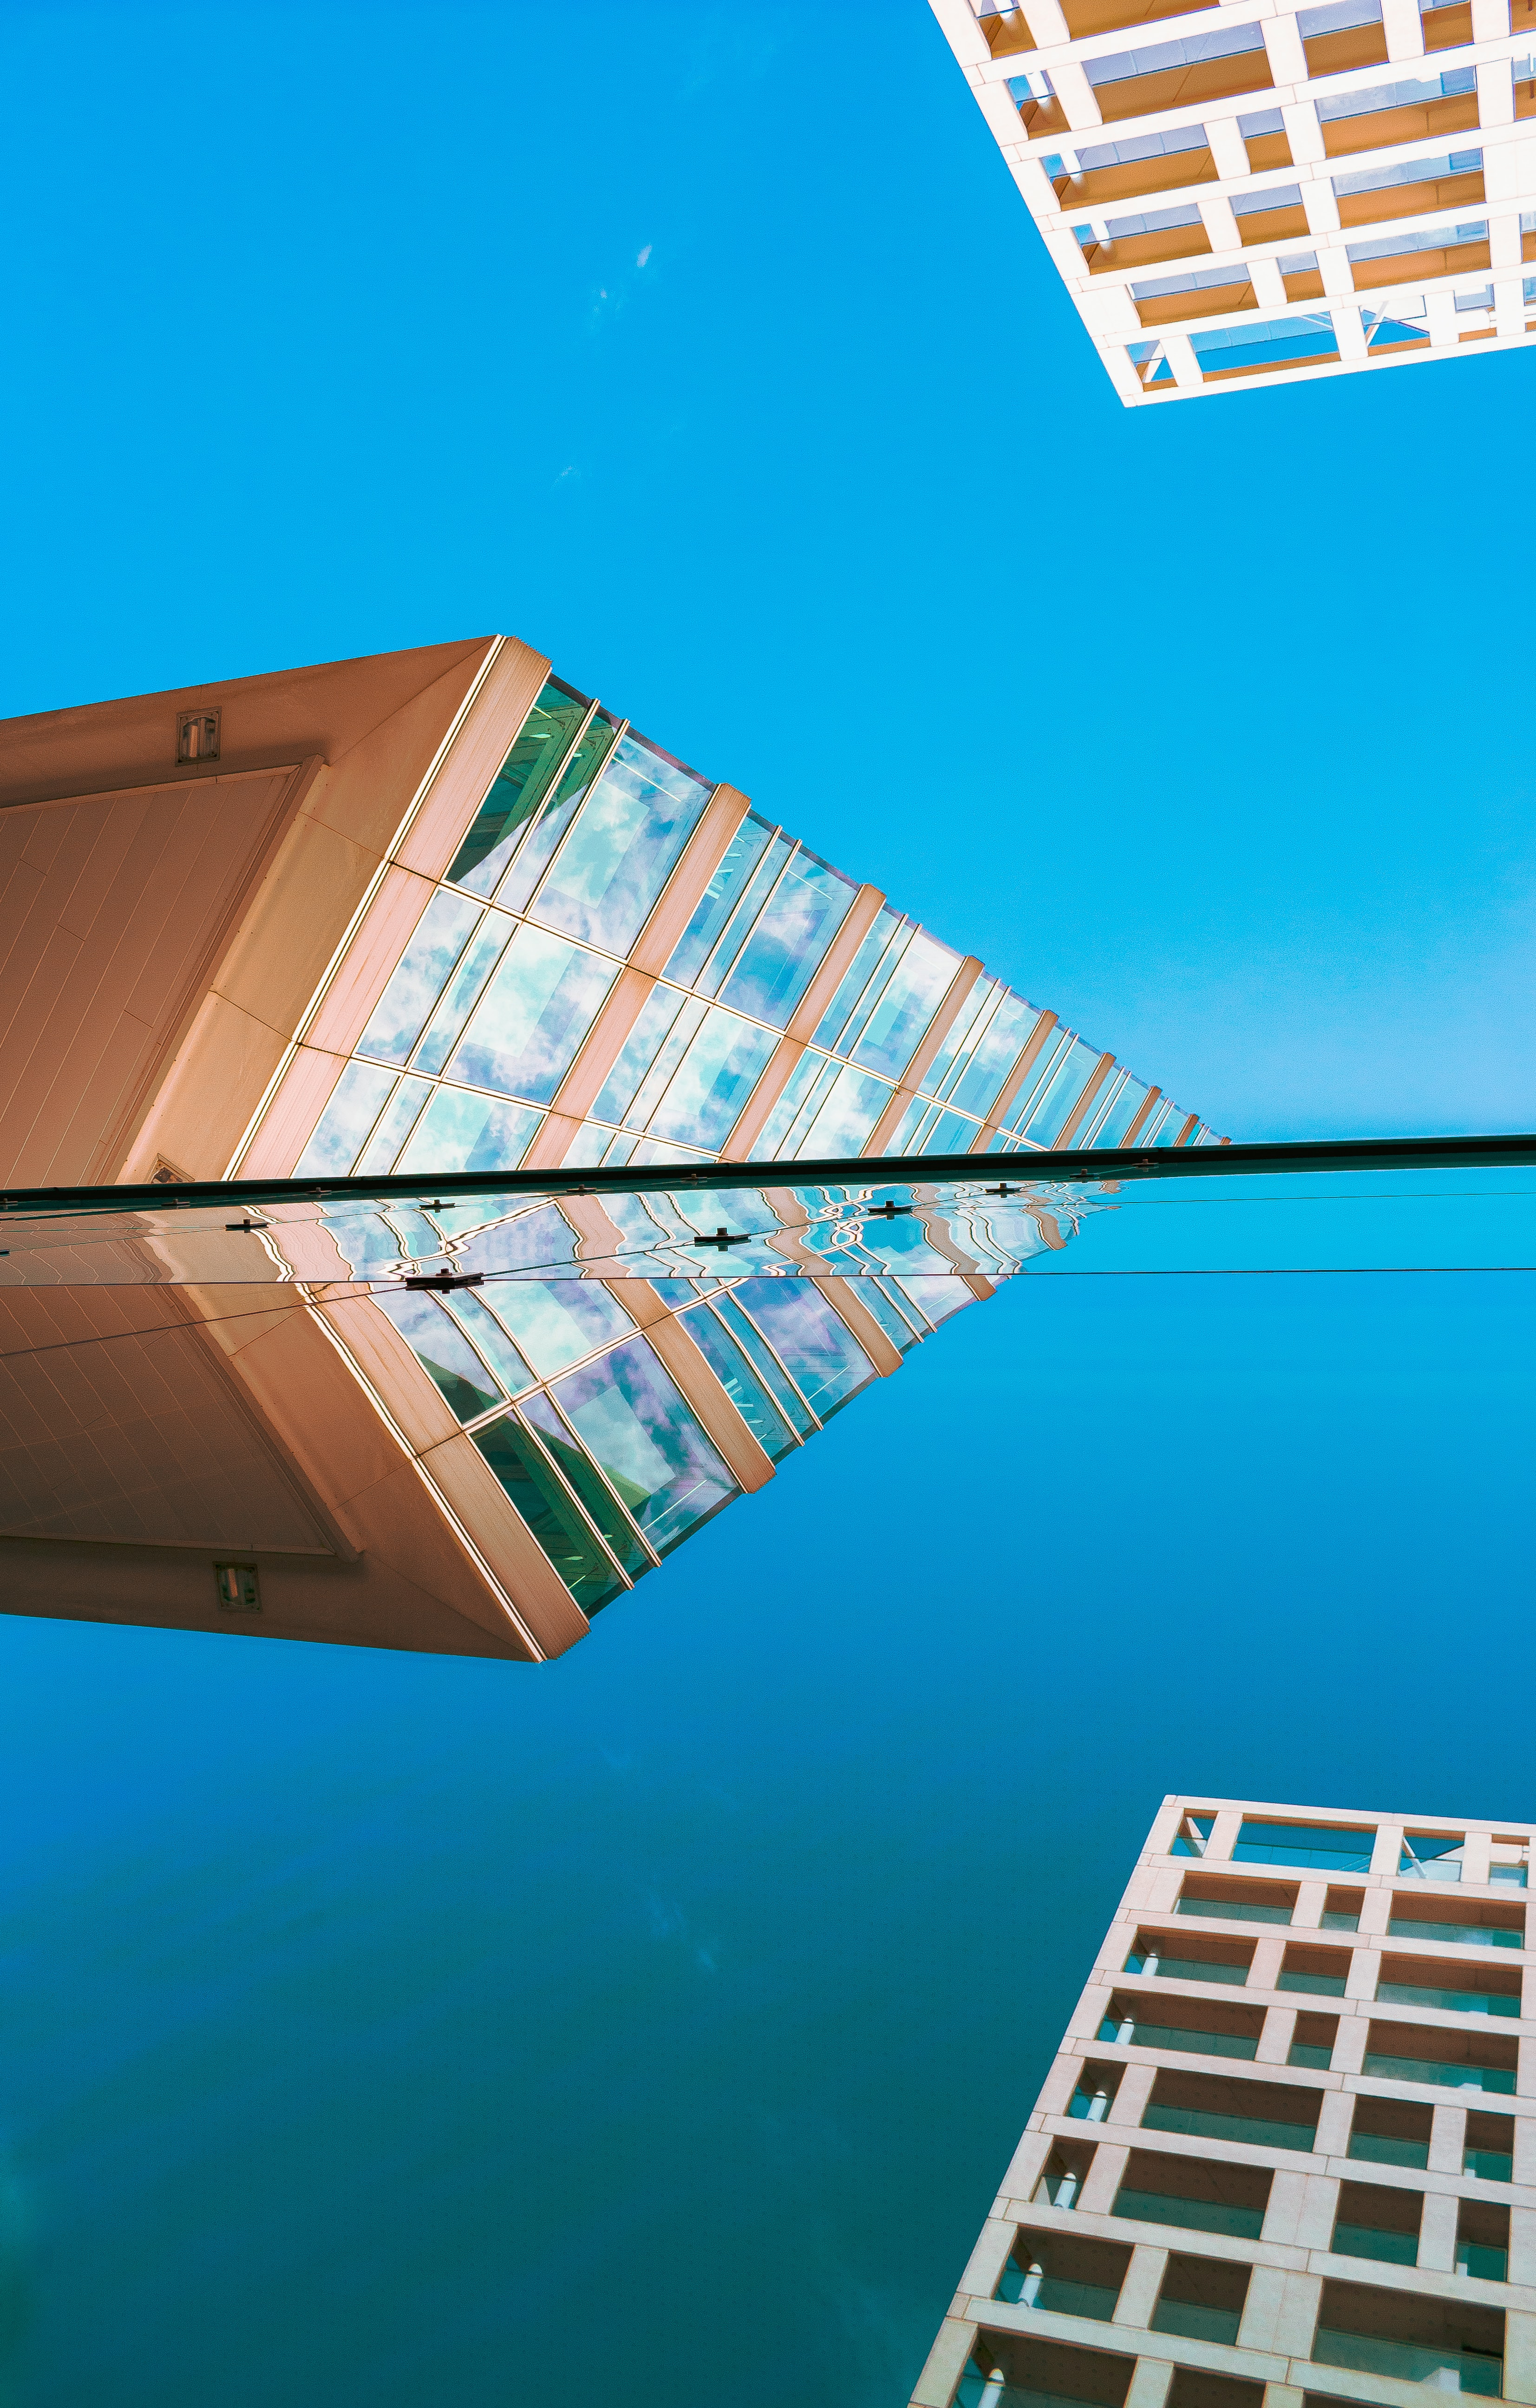 reflection of building on glass window during daytime